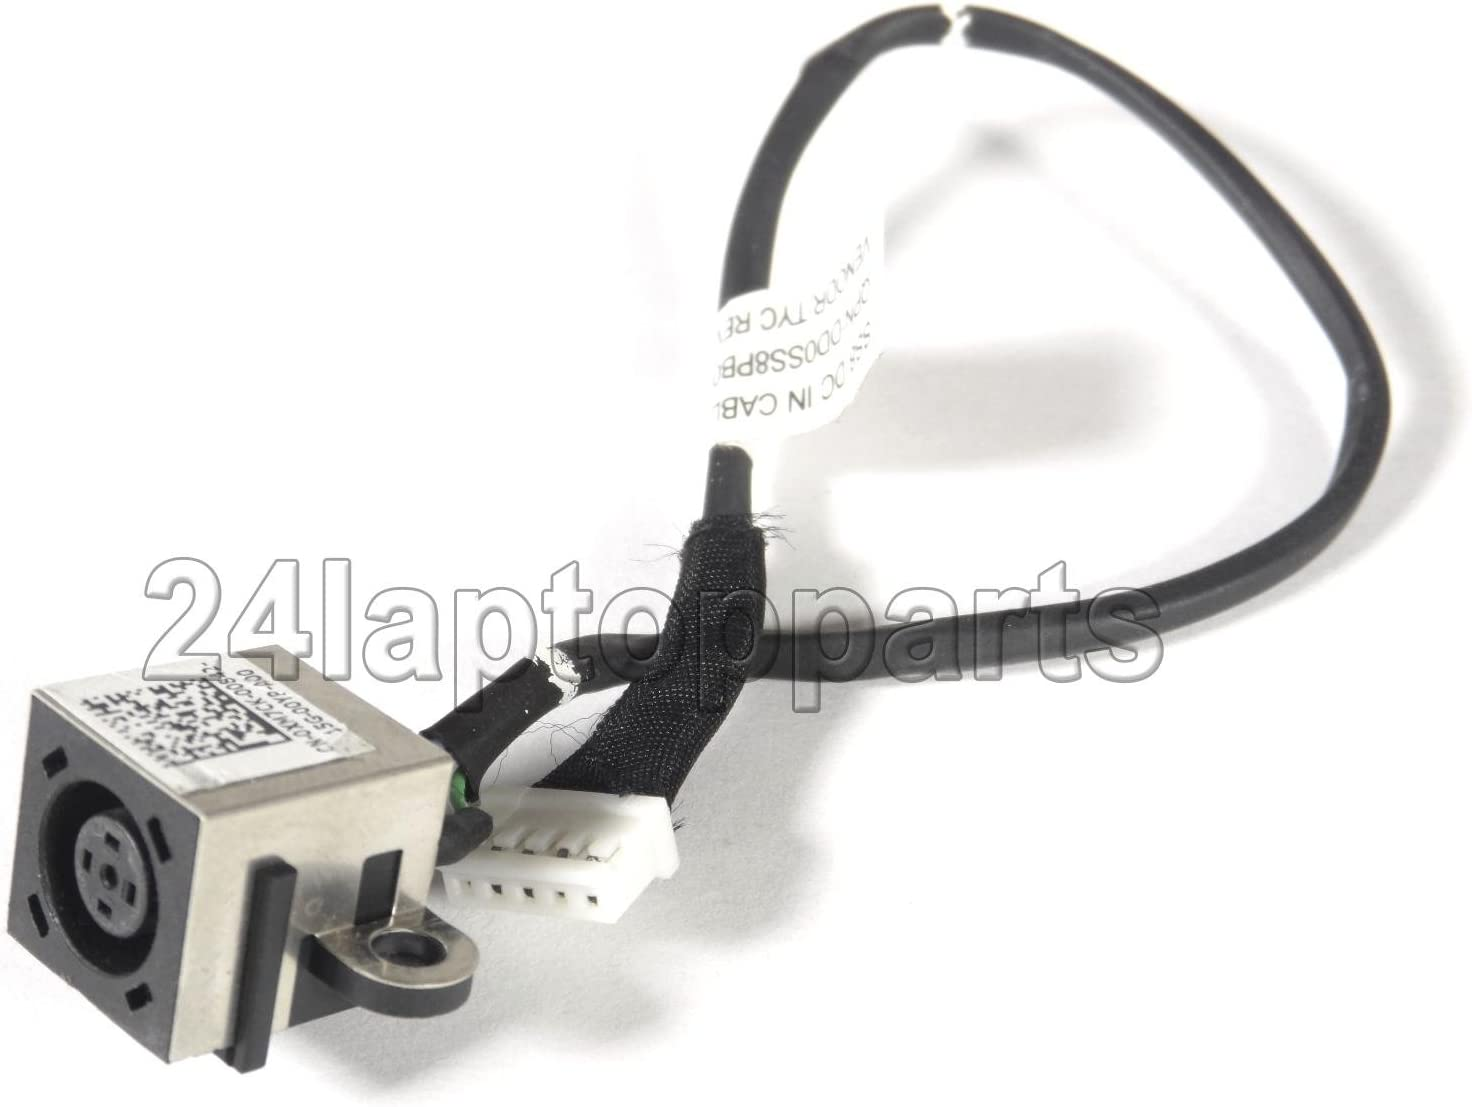 Dell XPS 15z (L511z) DC Power Input Jack with Cable - XM7CK